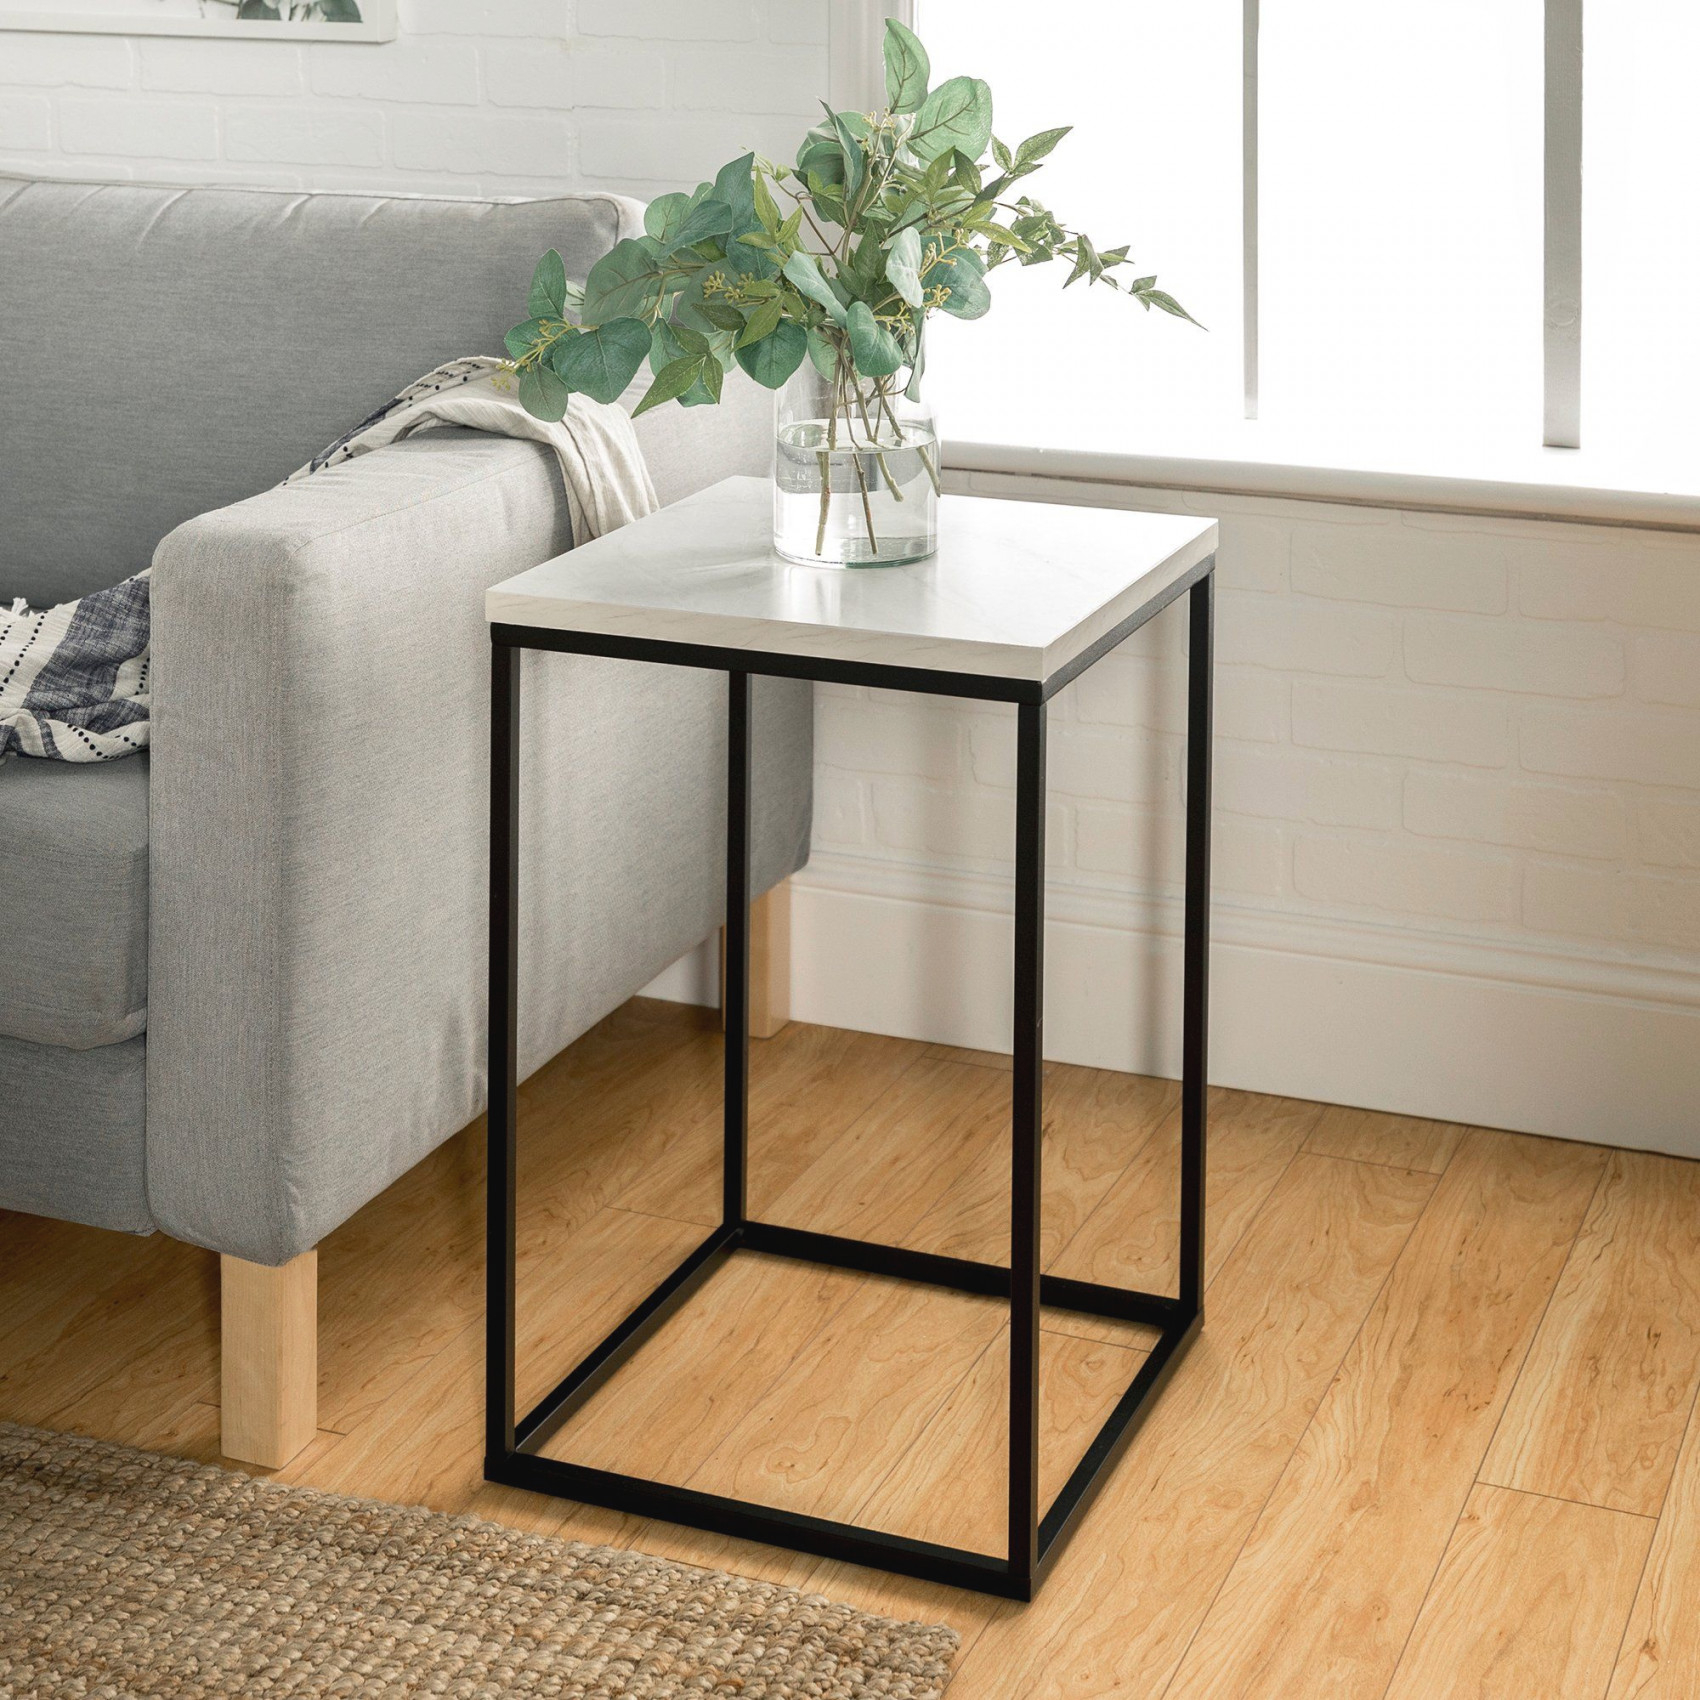 Modern Side Table – White Marble | Living Room Accent Tables intended for 9+ Awesome Inspiration For Small End Tables Living Room